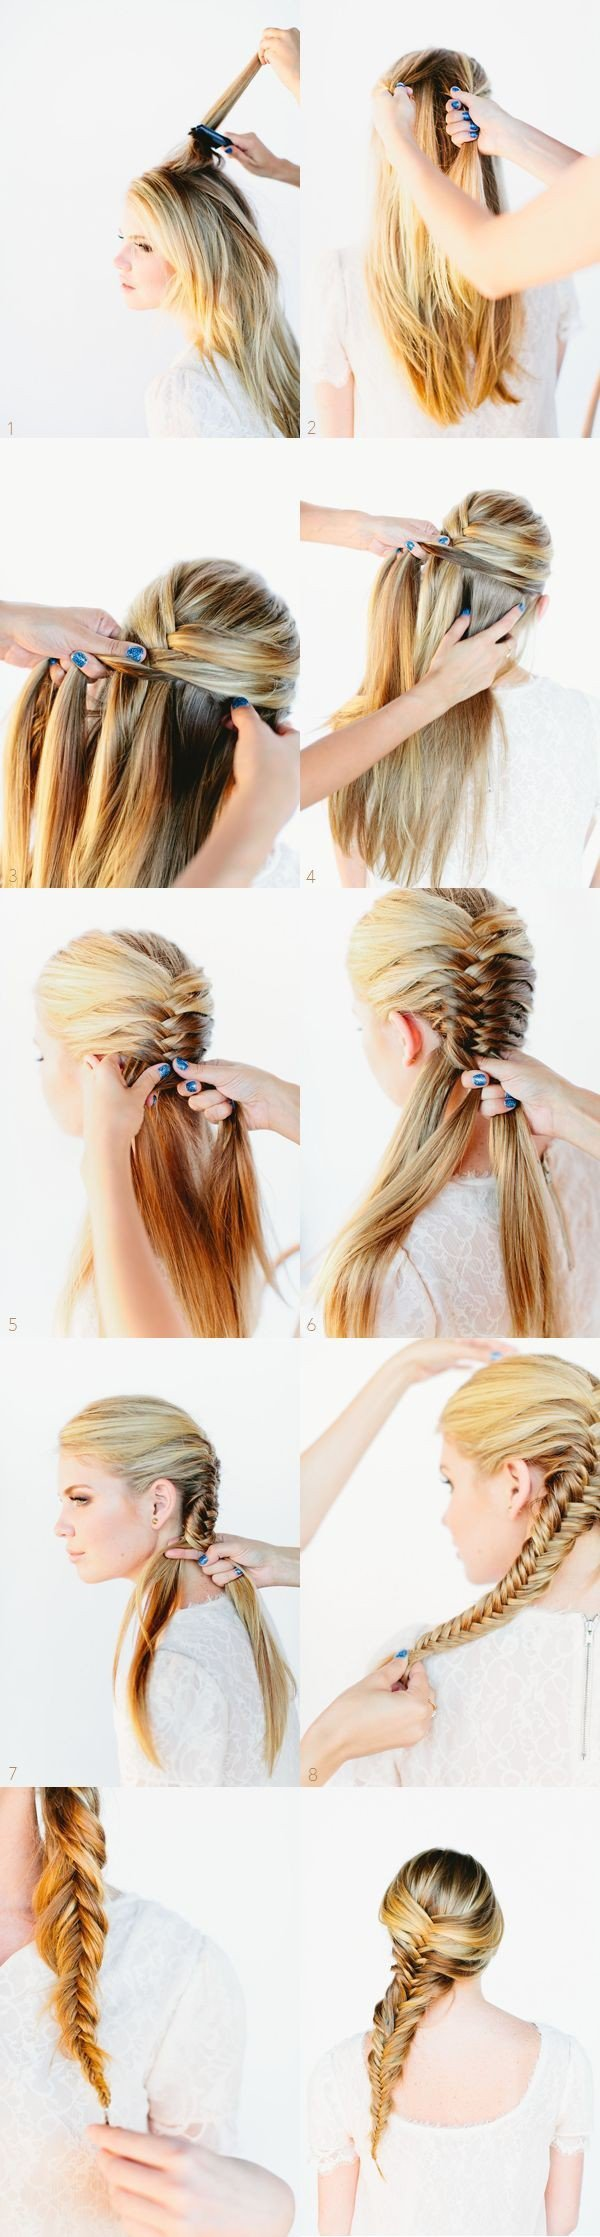 Braided-Hairstyles-Ideas-Messy-Side-Braids-Tutorial